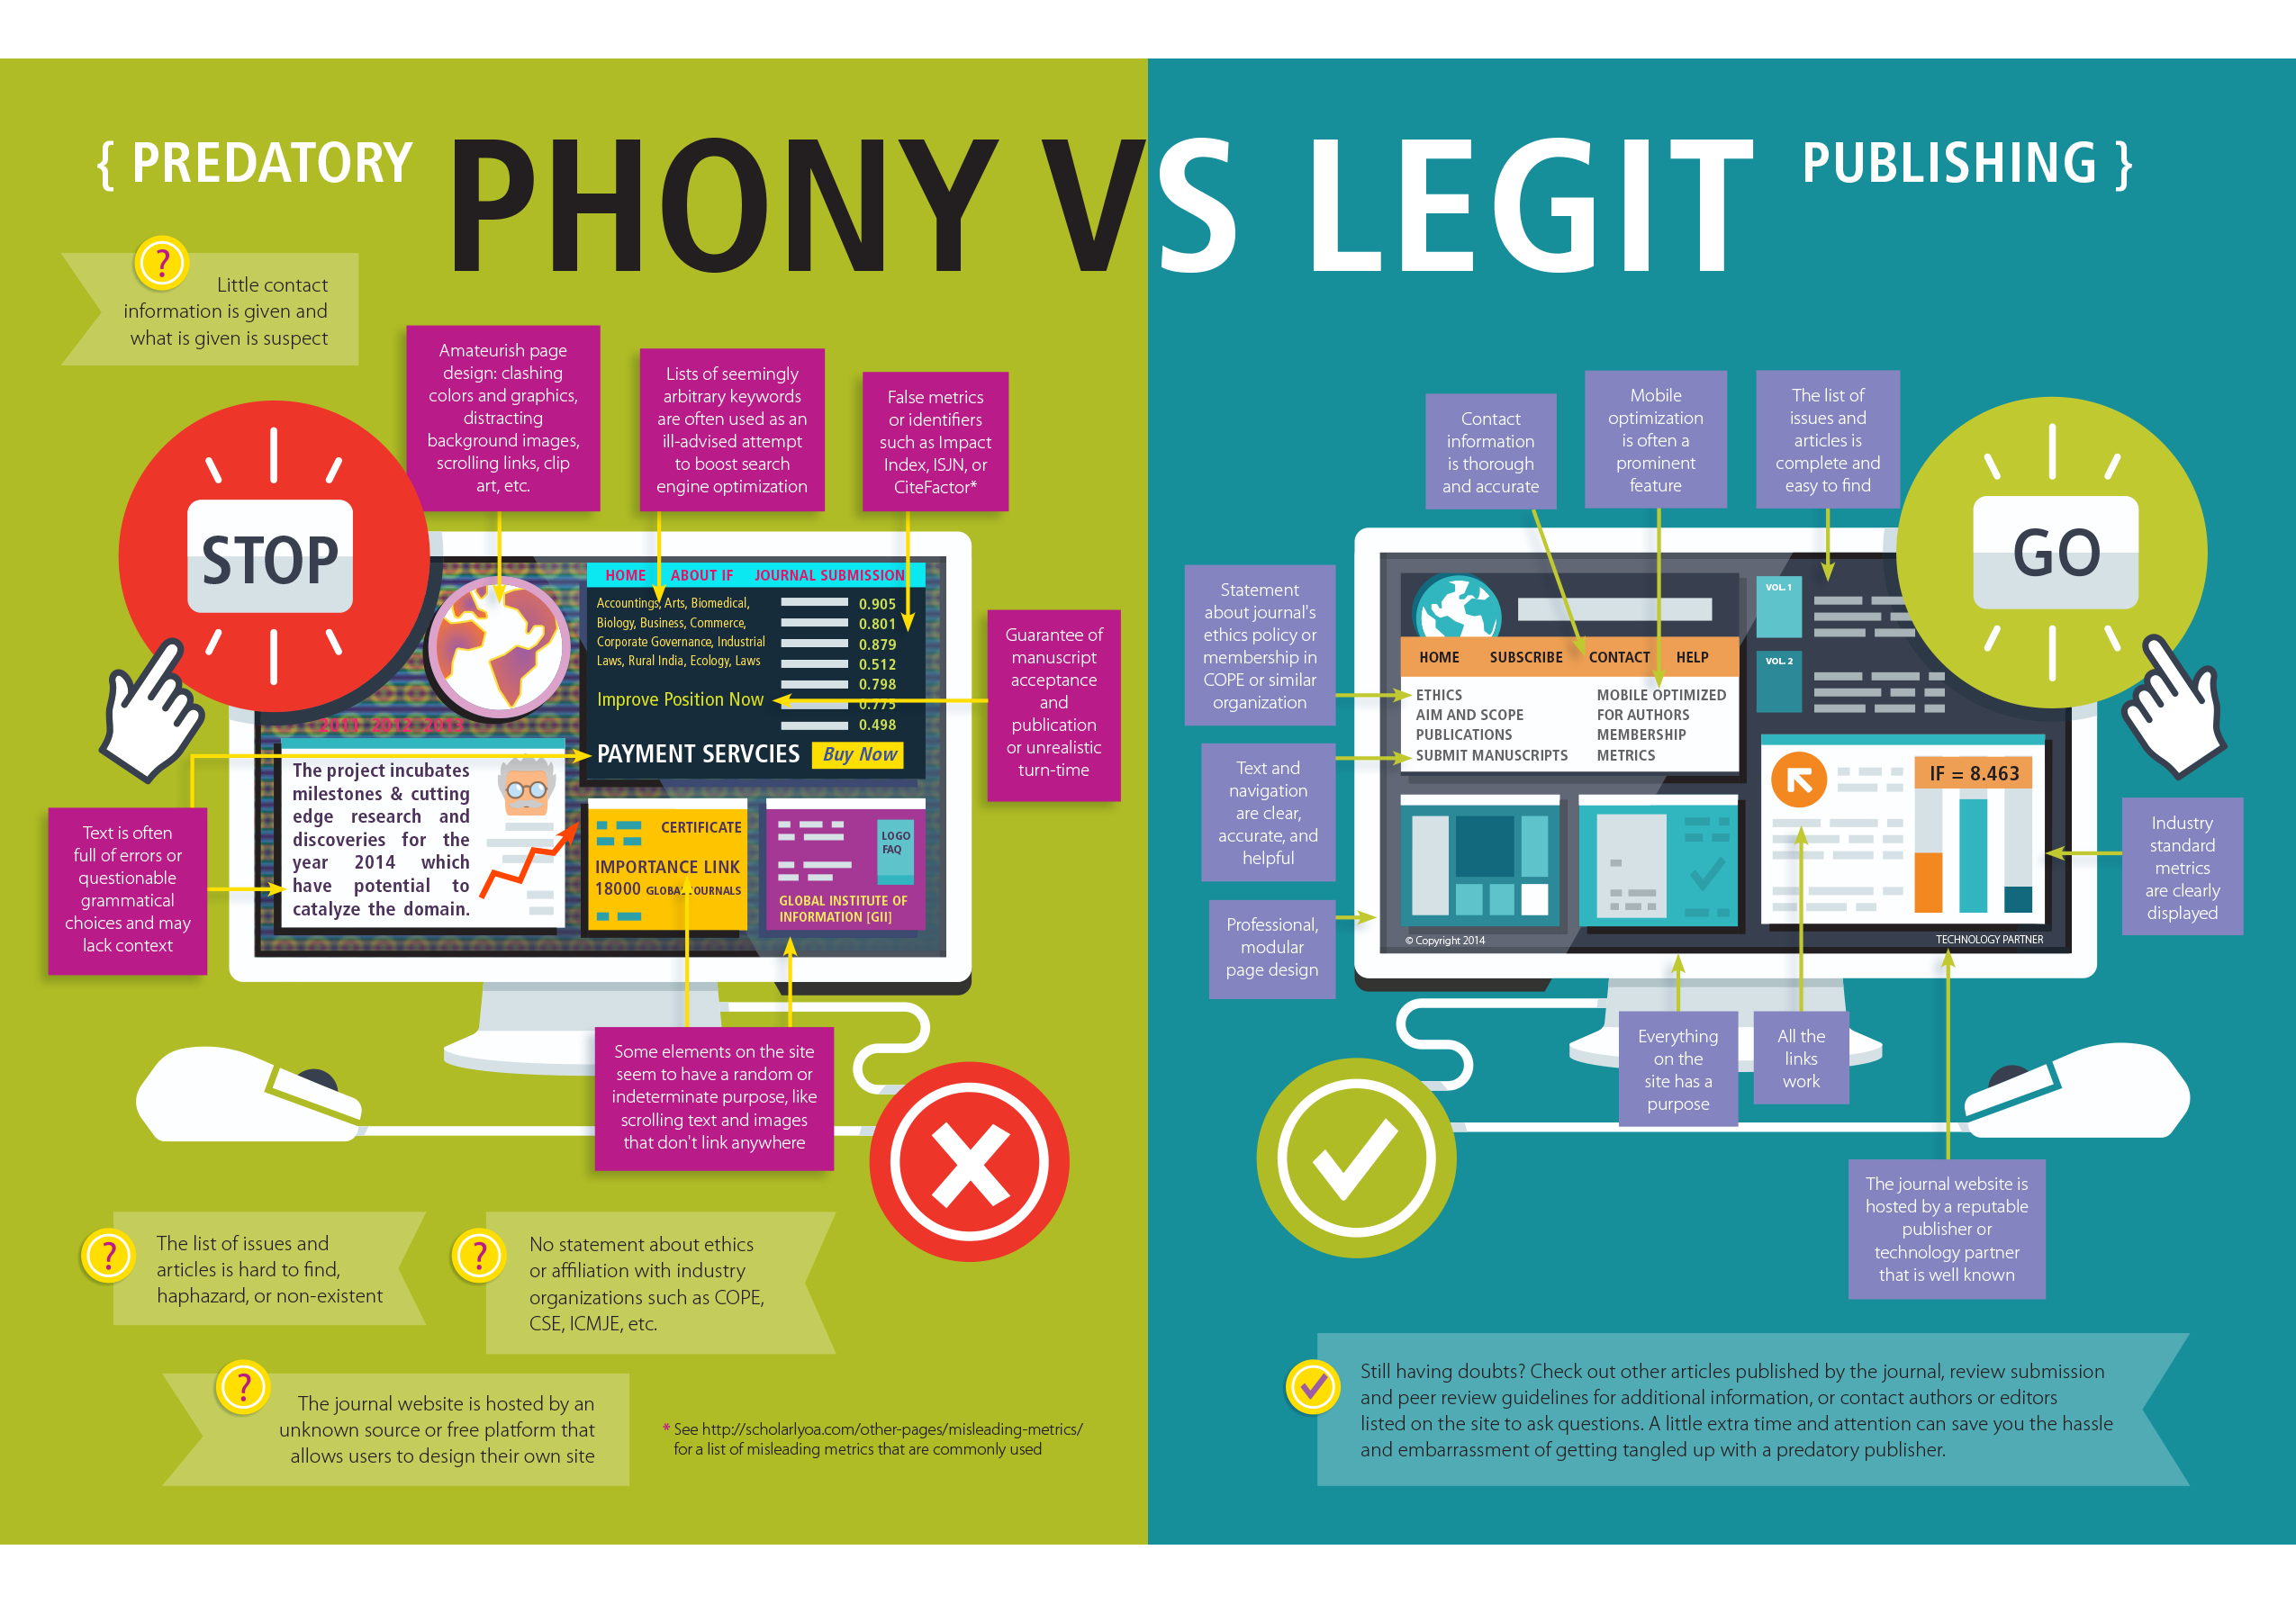 Phony vs Legit